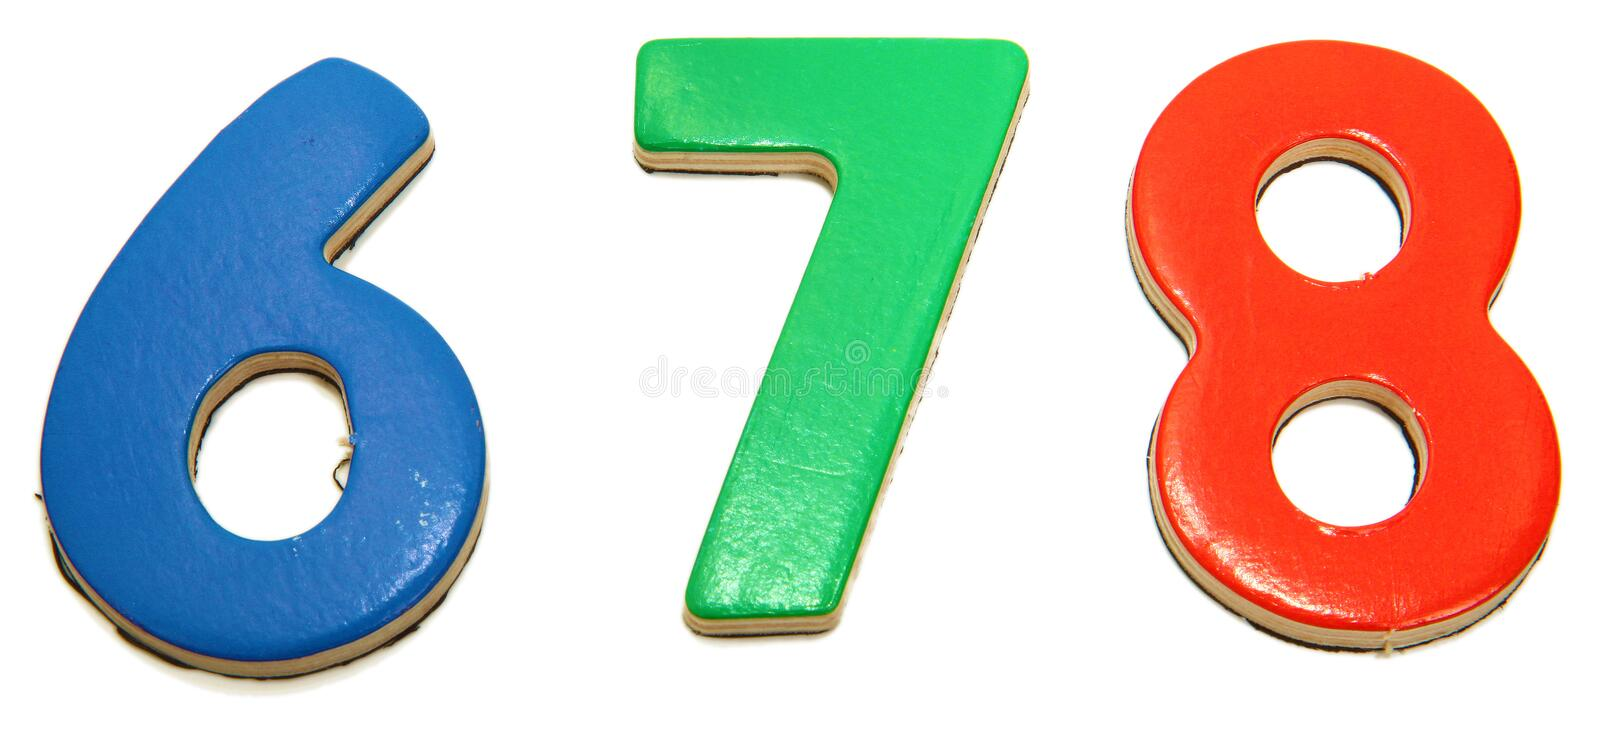 Download Colorful Magnetic Numbers 6 7 8 Stock Image - Image: 14517247